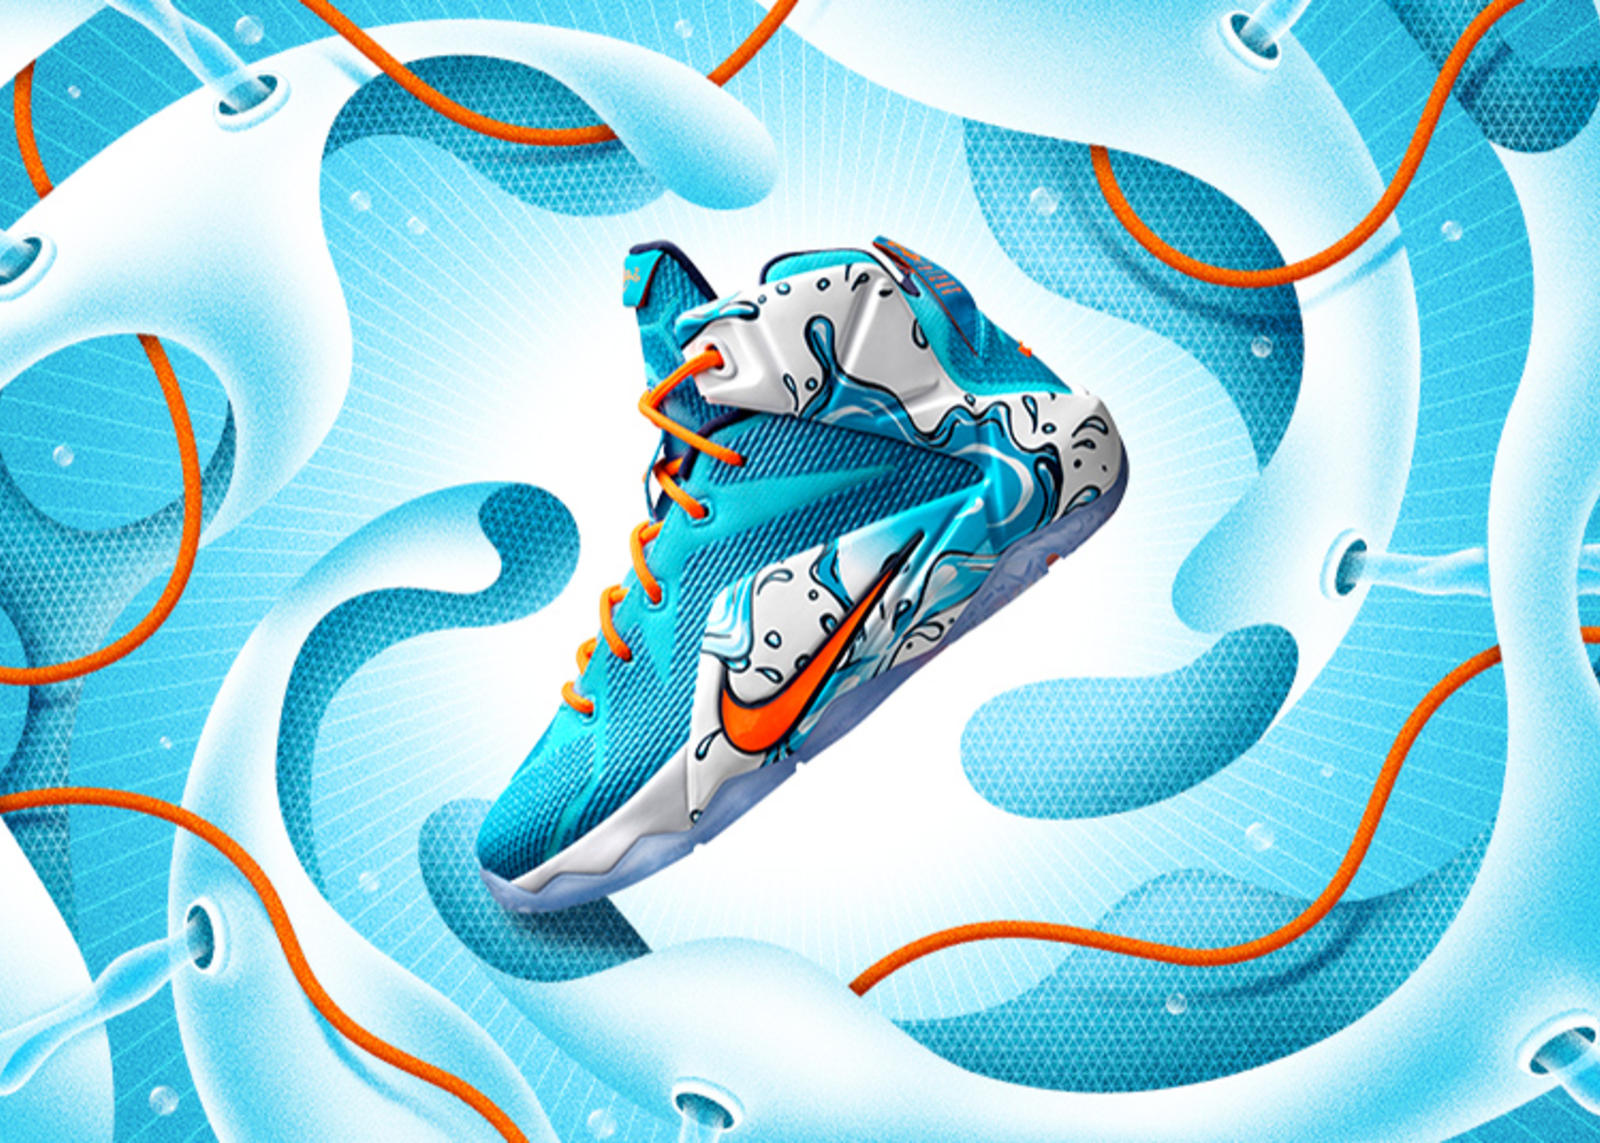 81170a492ab Make a Splash With LeBron and Kobe  The Summer Time Fun Pack ...